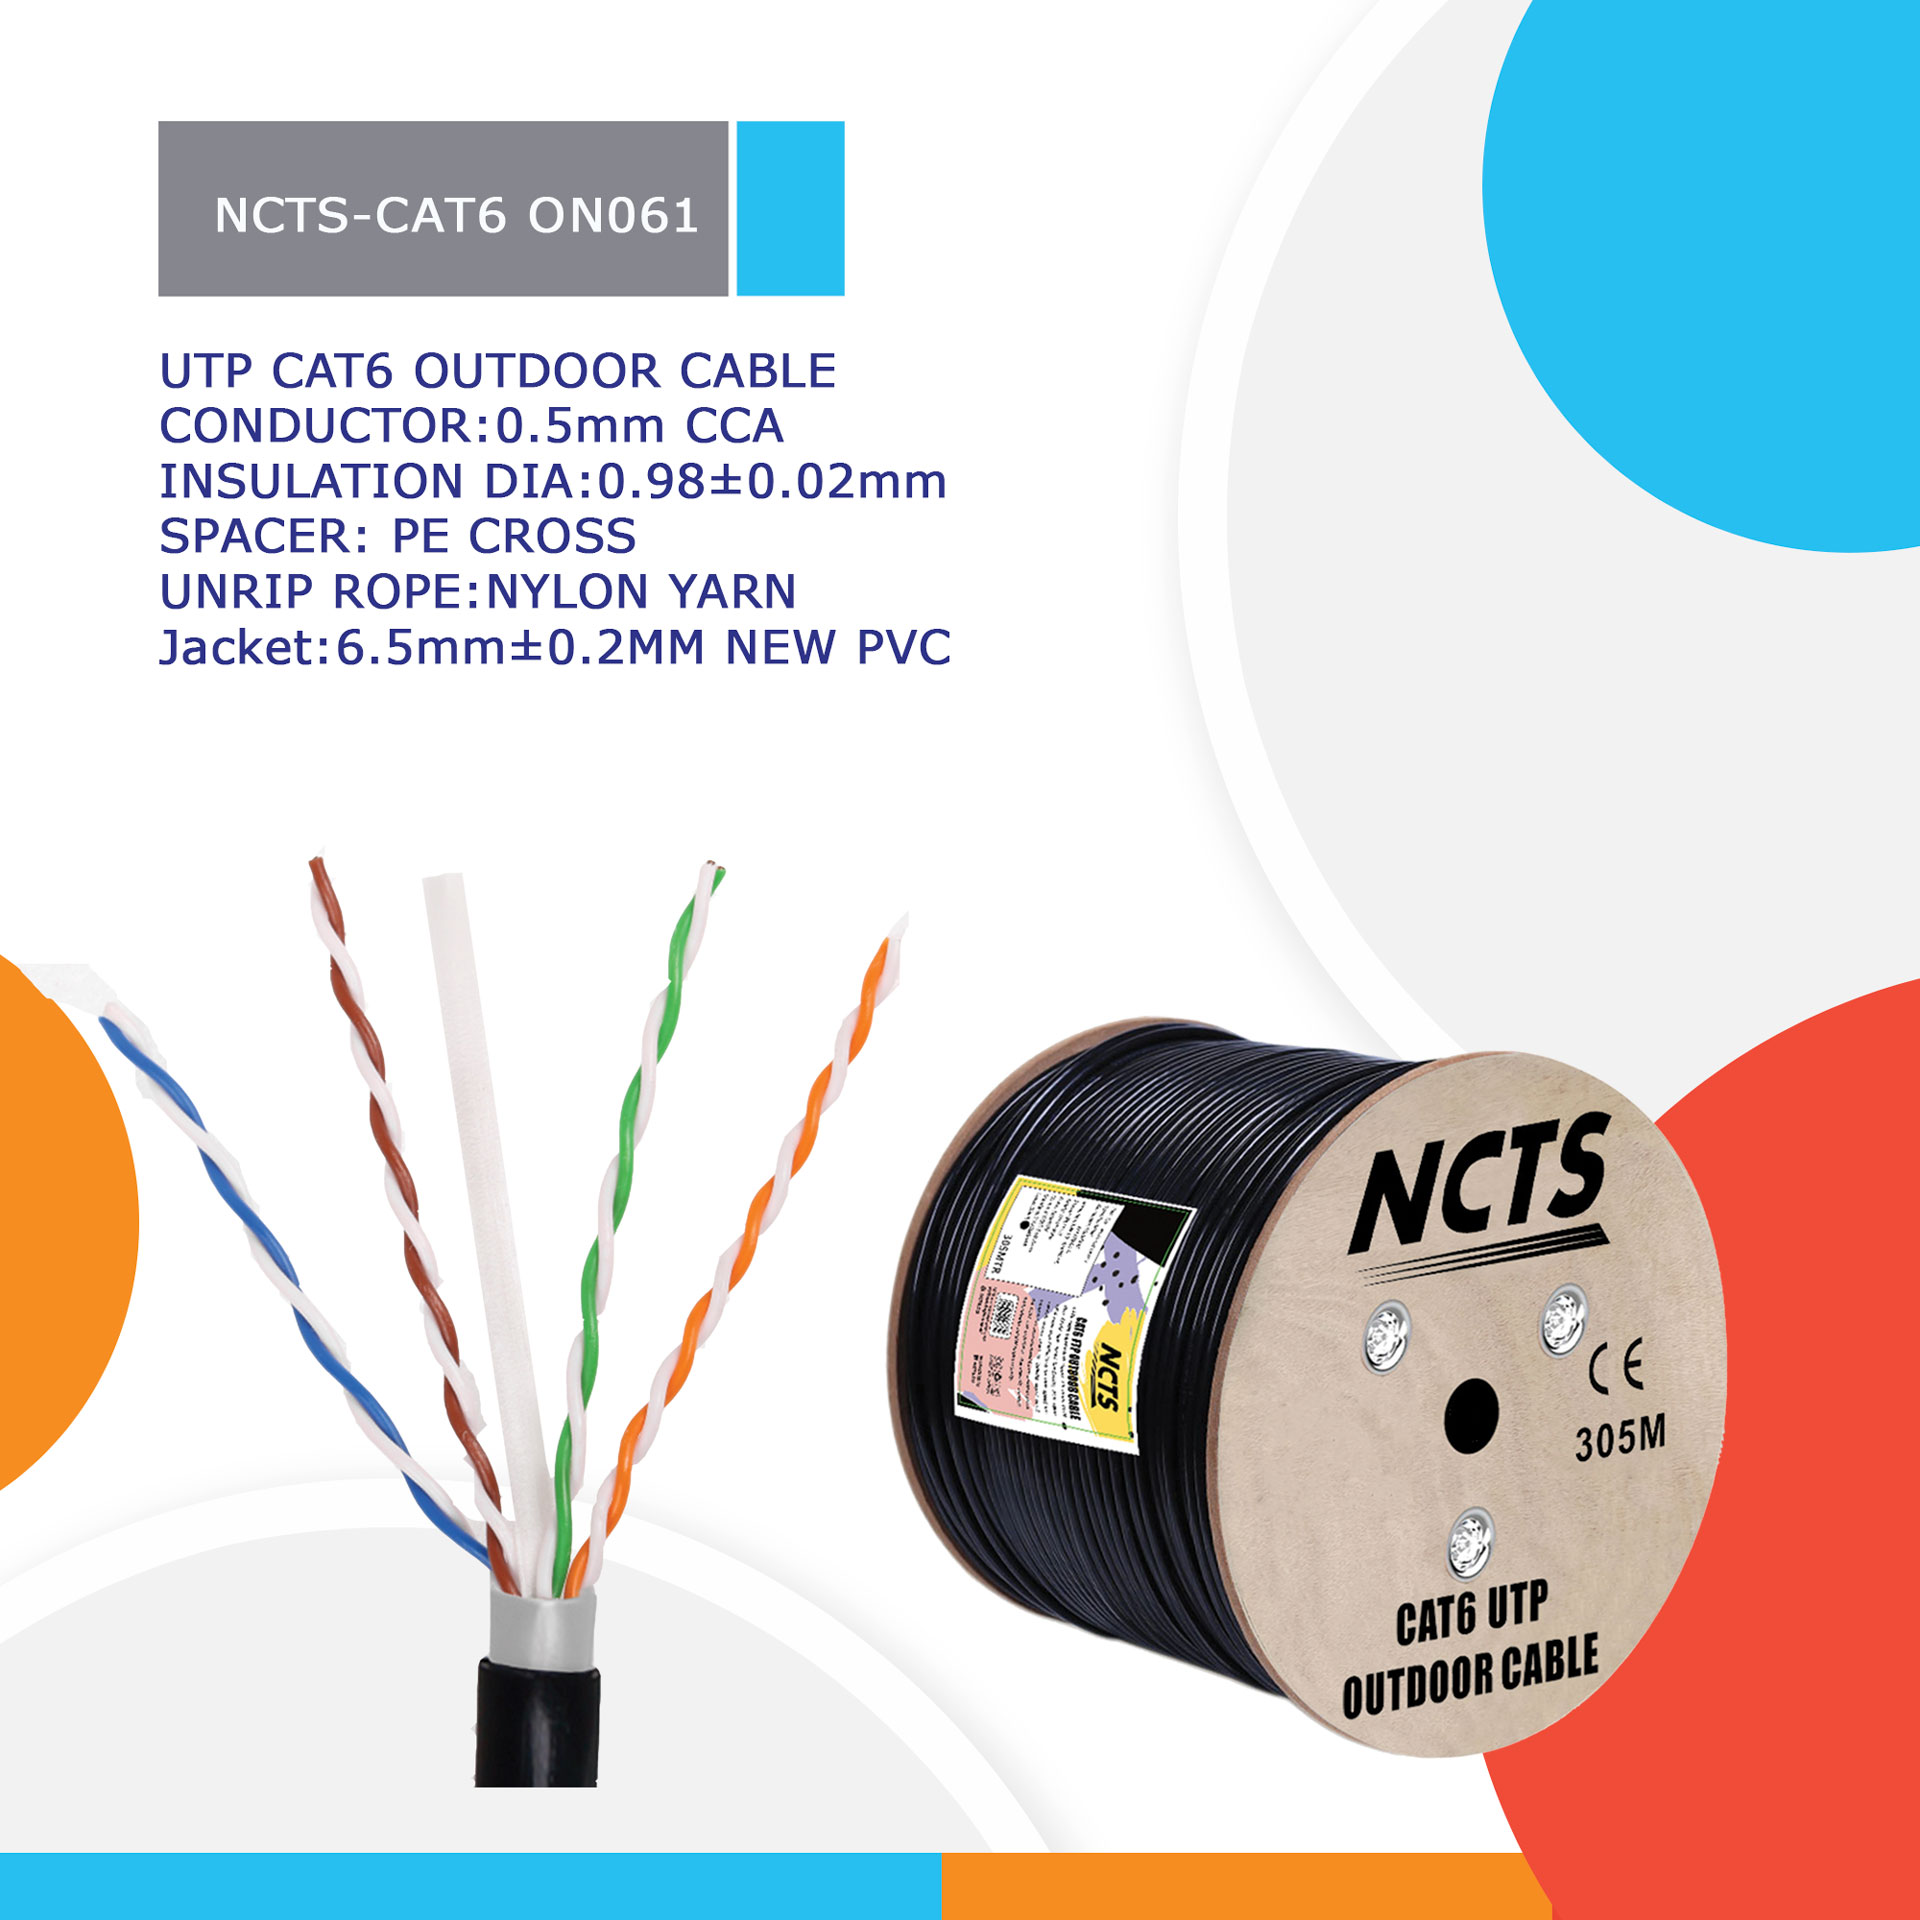 NCTS-CAT6 ON061